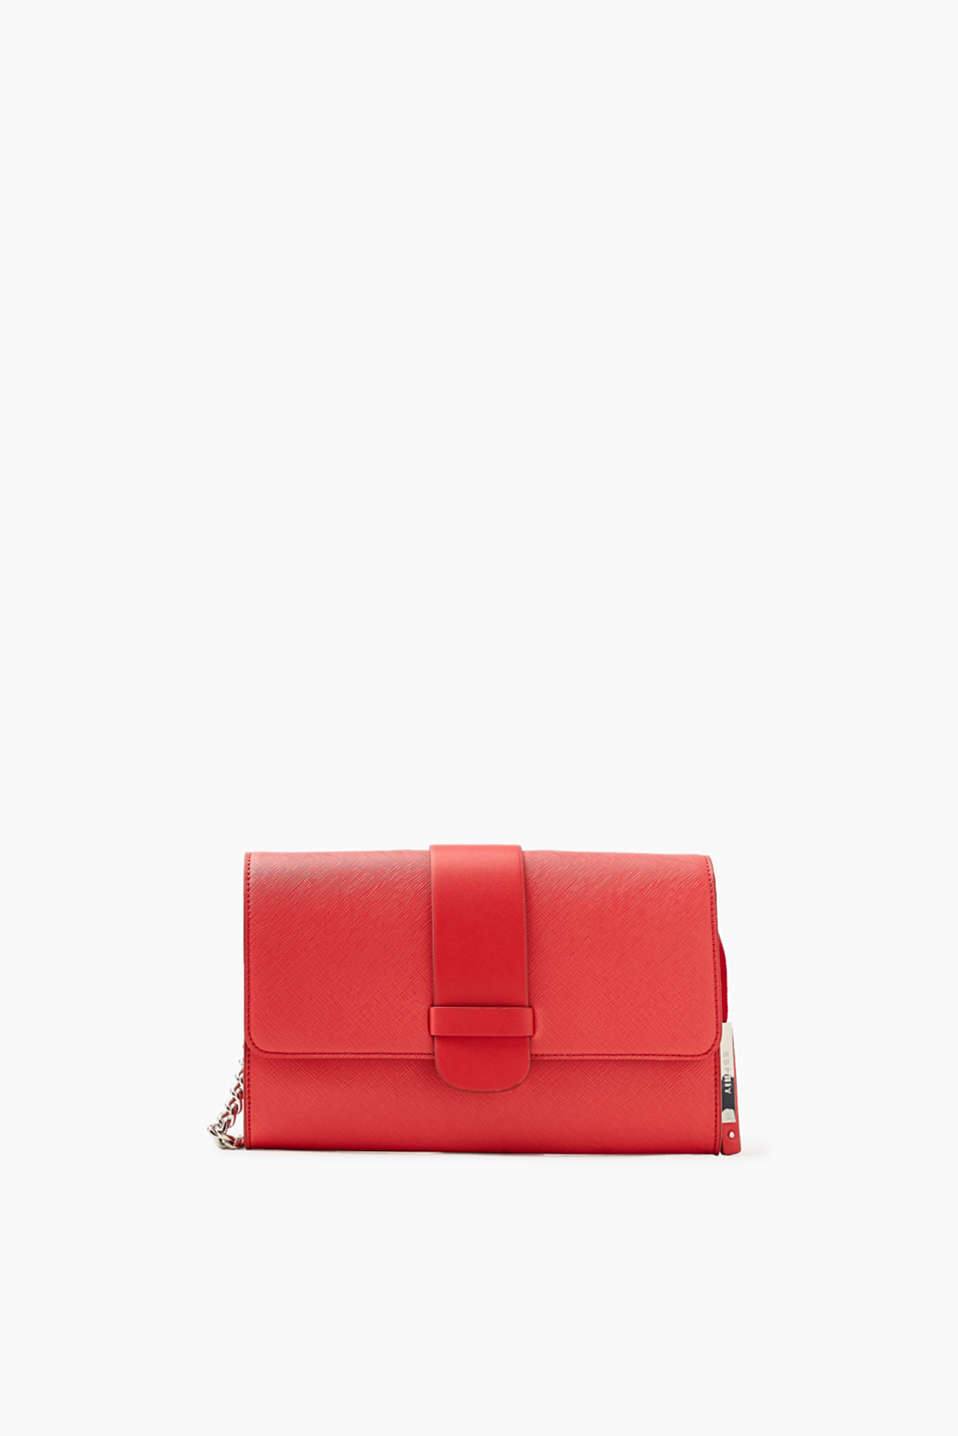 Shoulder bag or clutch: this faux leather bag gives your evening look a timeless and elegant finishing touch.